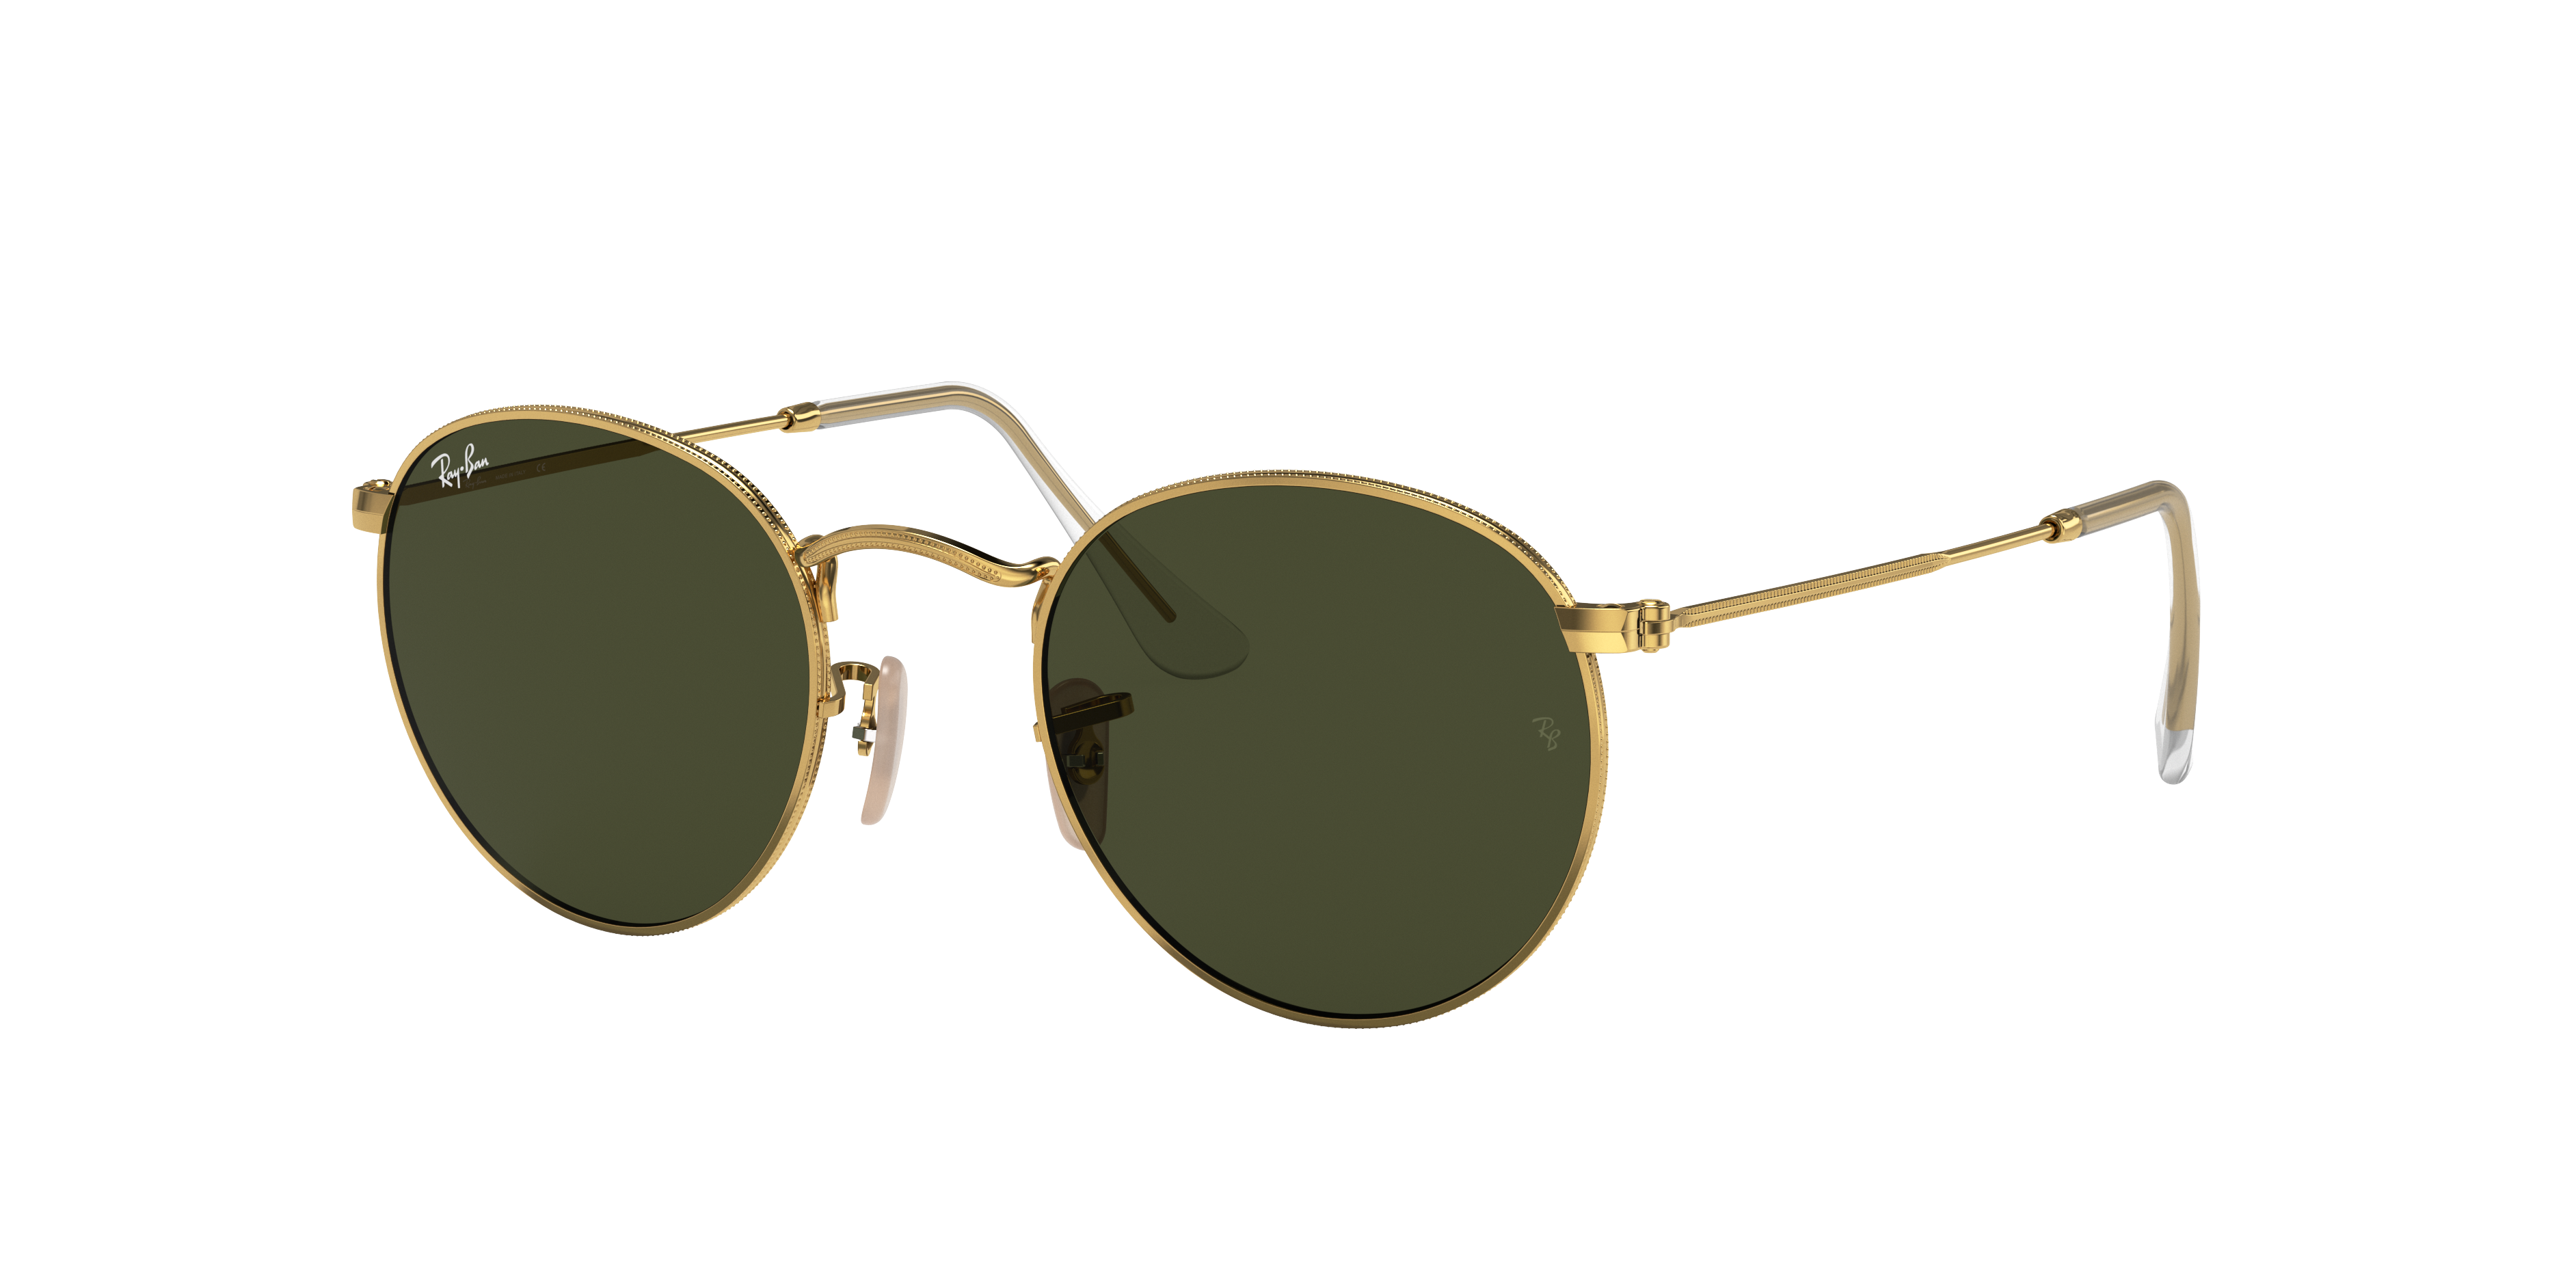 Ray-Ban Round Metal Gold, Green Lenses - RB3447